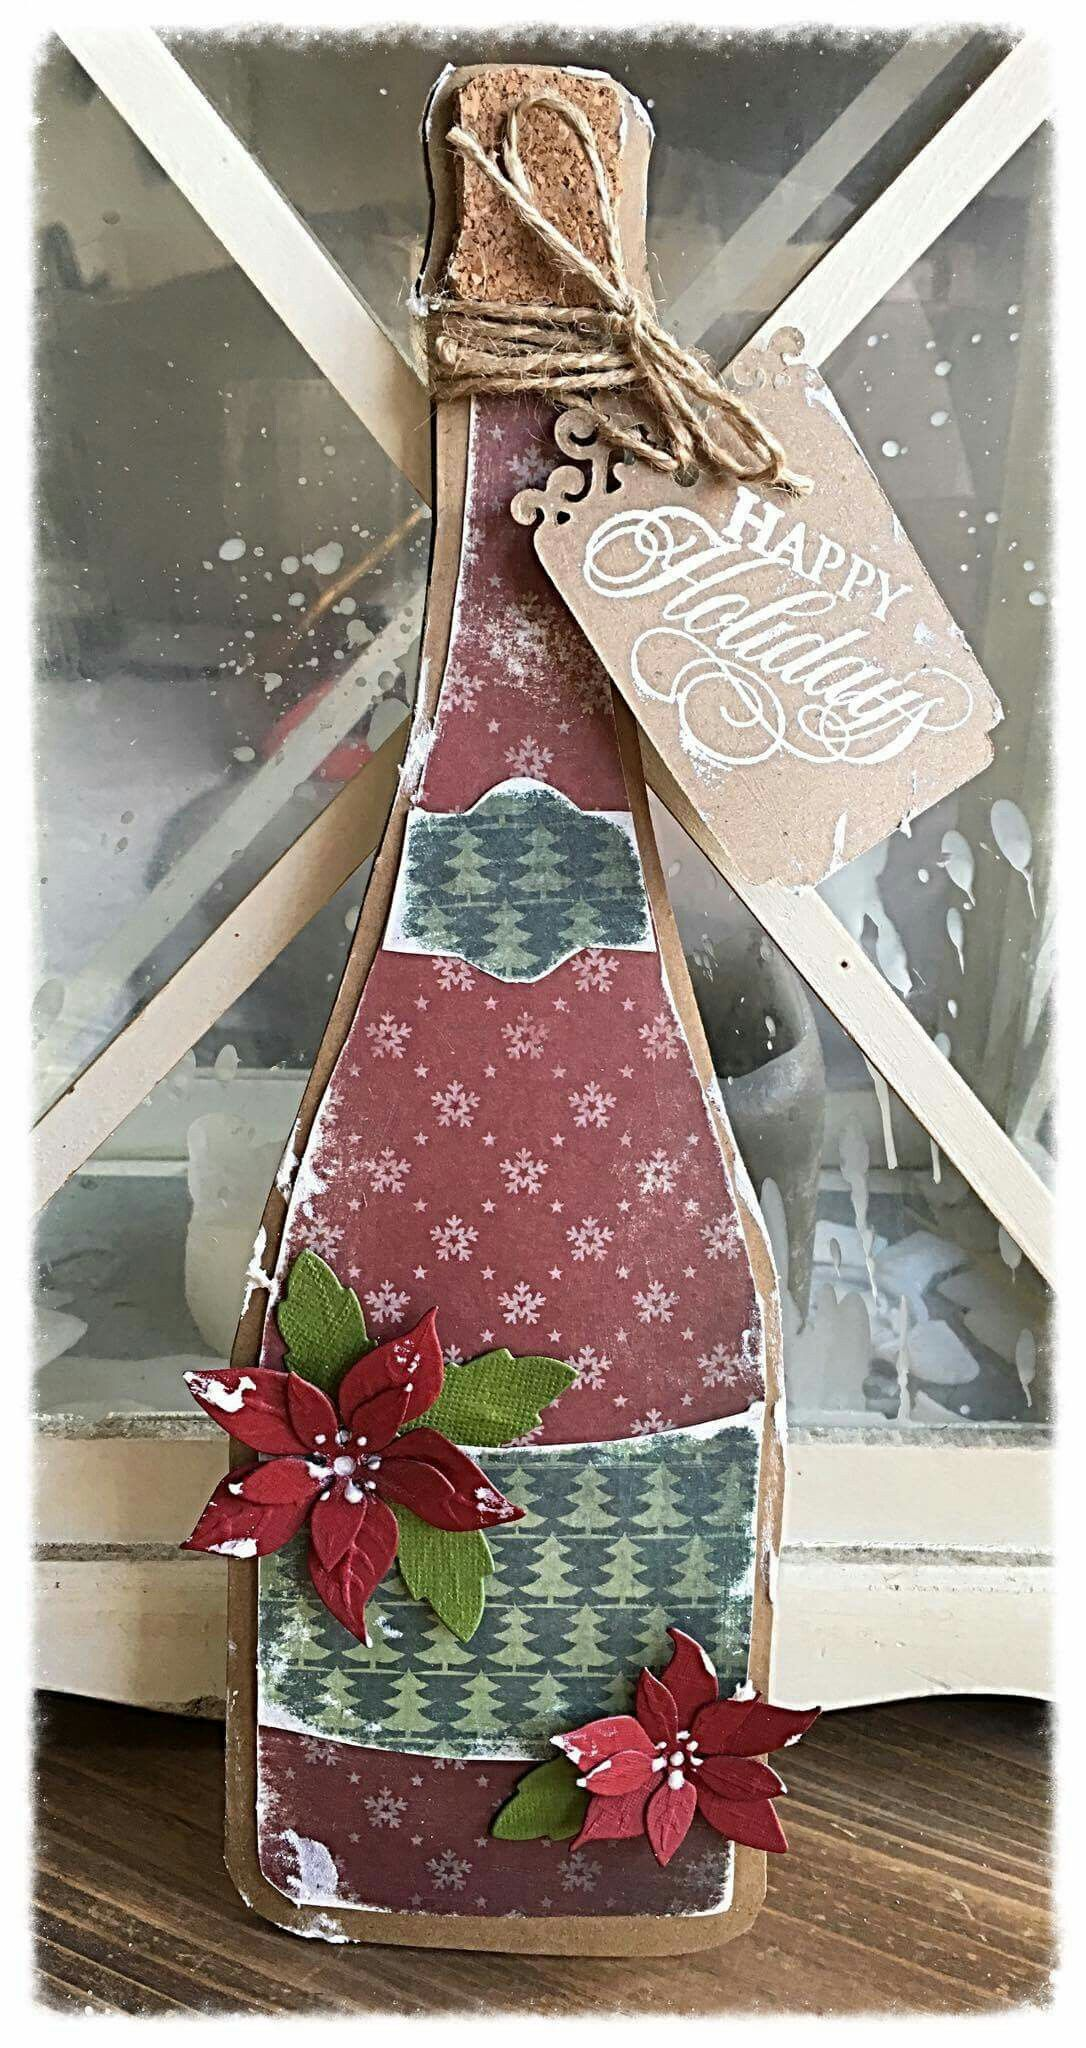 Pin By Silvia Janson On 470 713 602 Dutch Doobadoo Card Art Champagne Bottle Christmas Card Inspiration Christmas Cards Xmas Cards